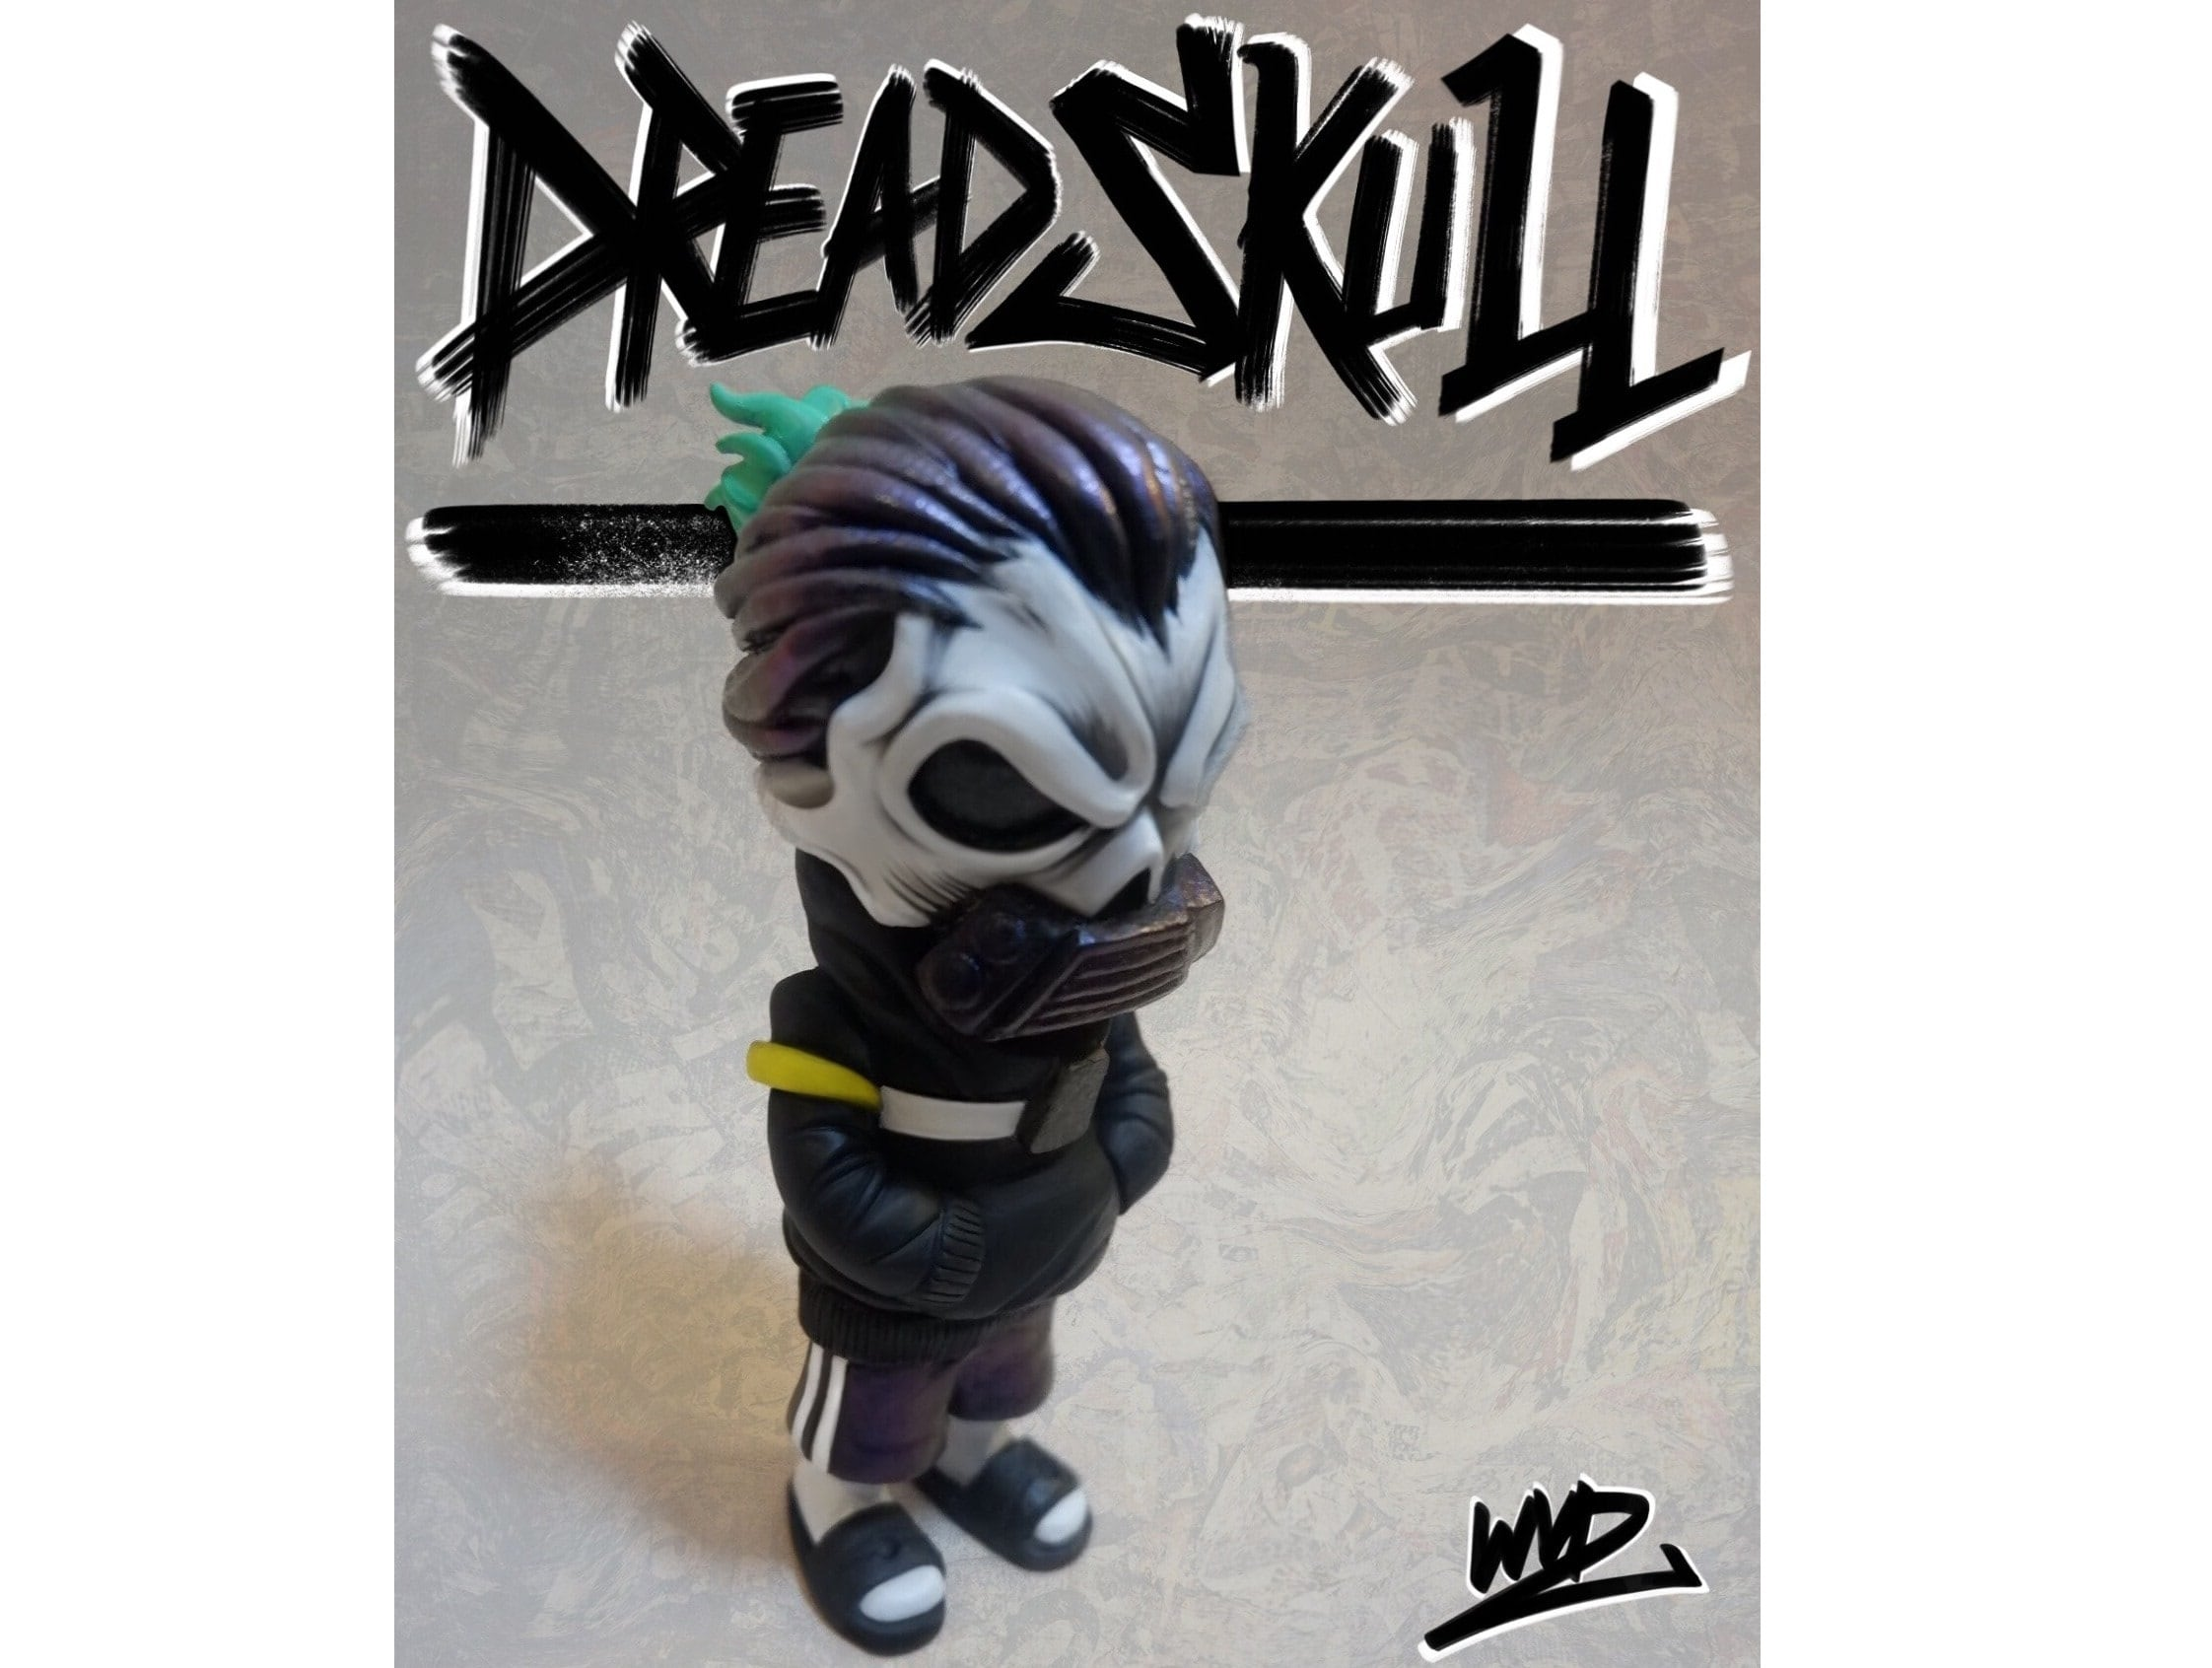 Dread Skull (original edition) de WeirdVader (WVD) Art Toy